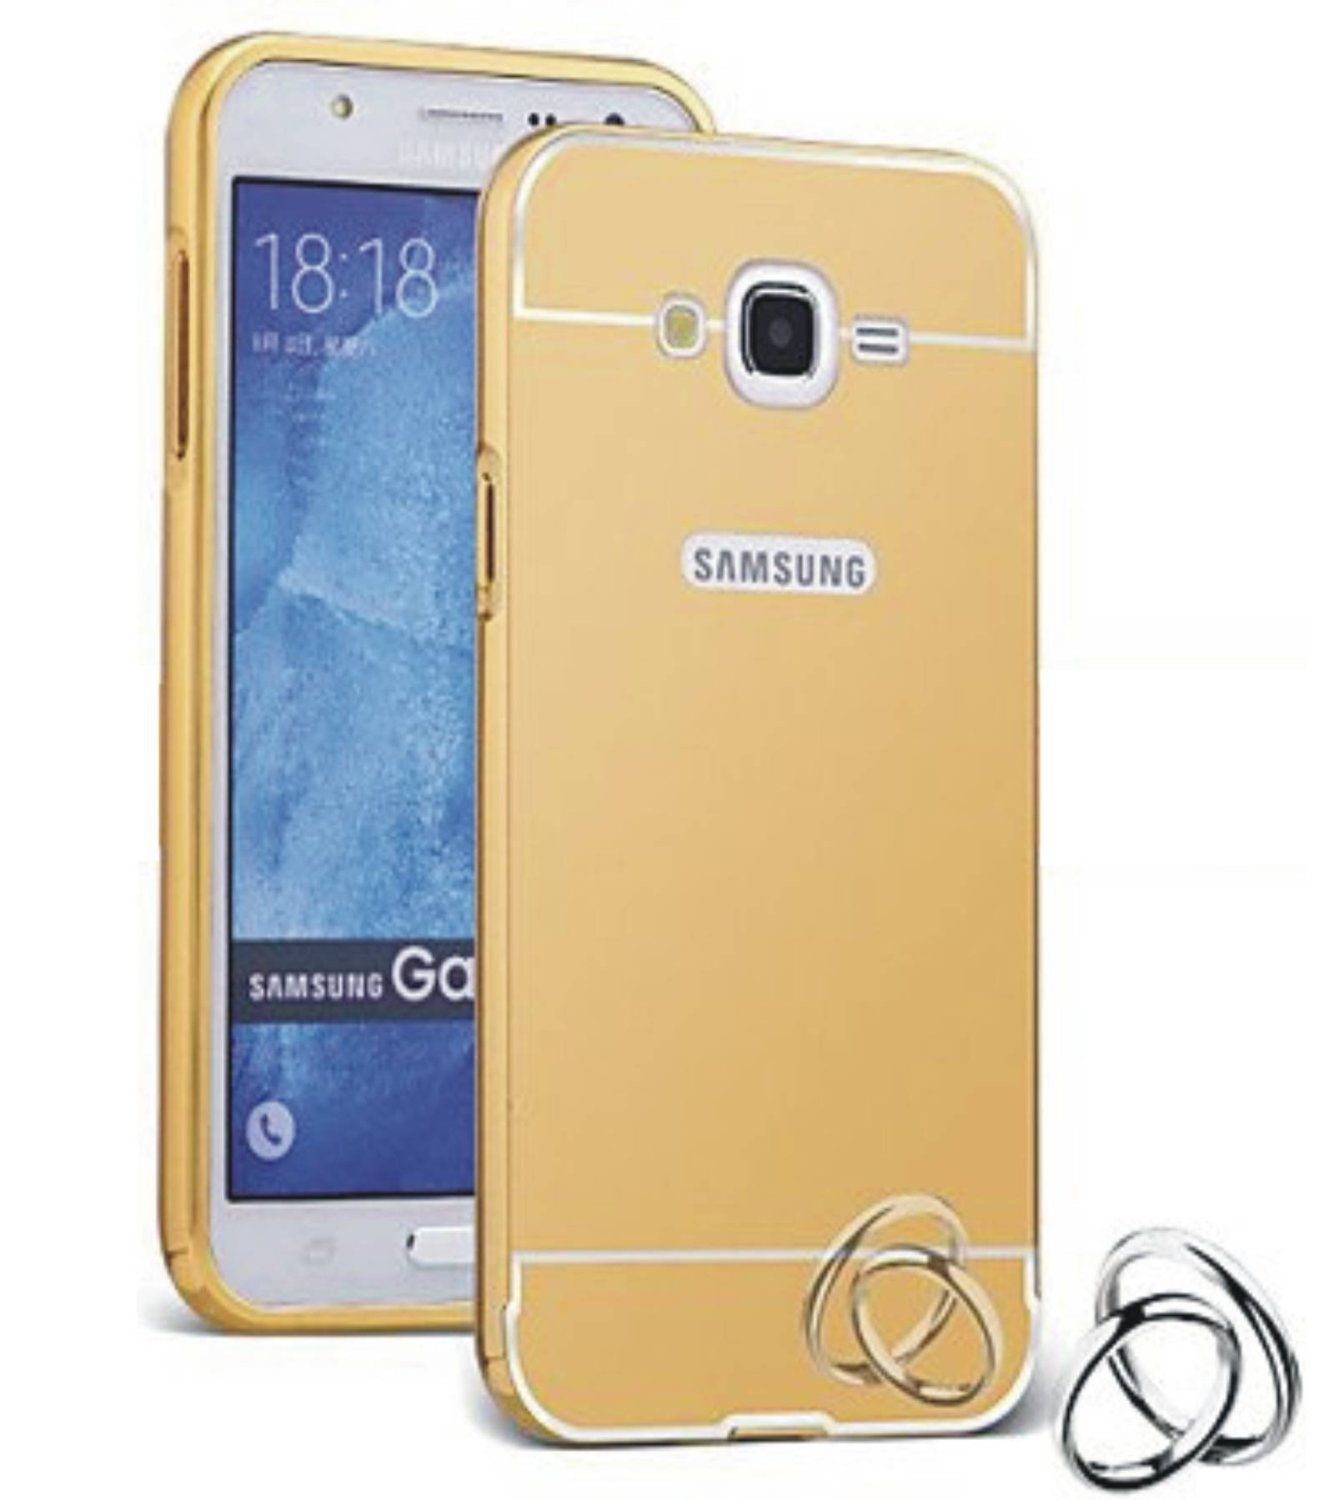 Mirror Back Cover For Samsung Galaxy E5 + Zipper earphone free by Style Crome.